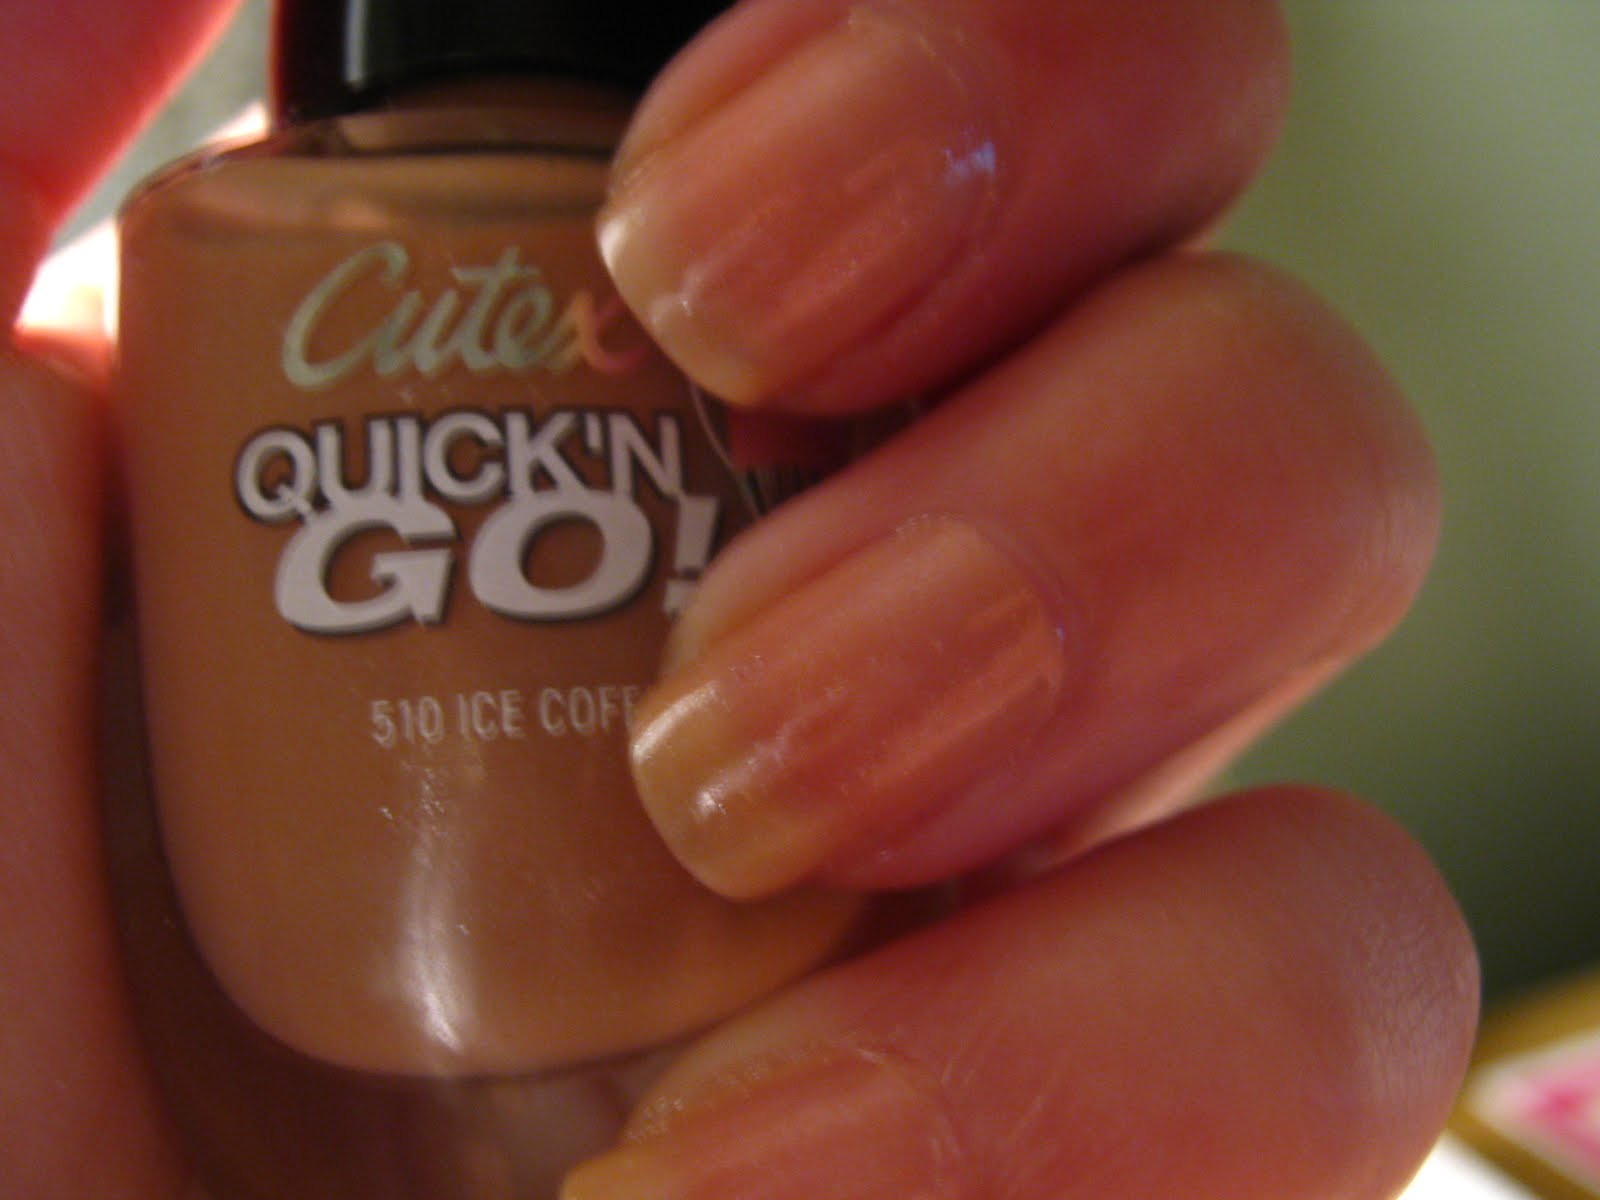 Jade goes with everything.: Nude nail polish